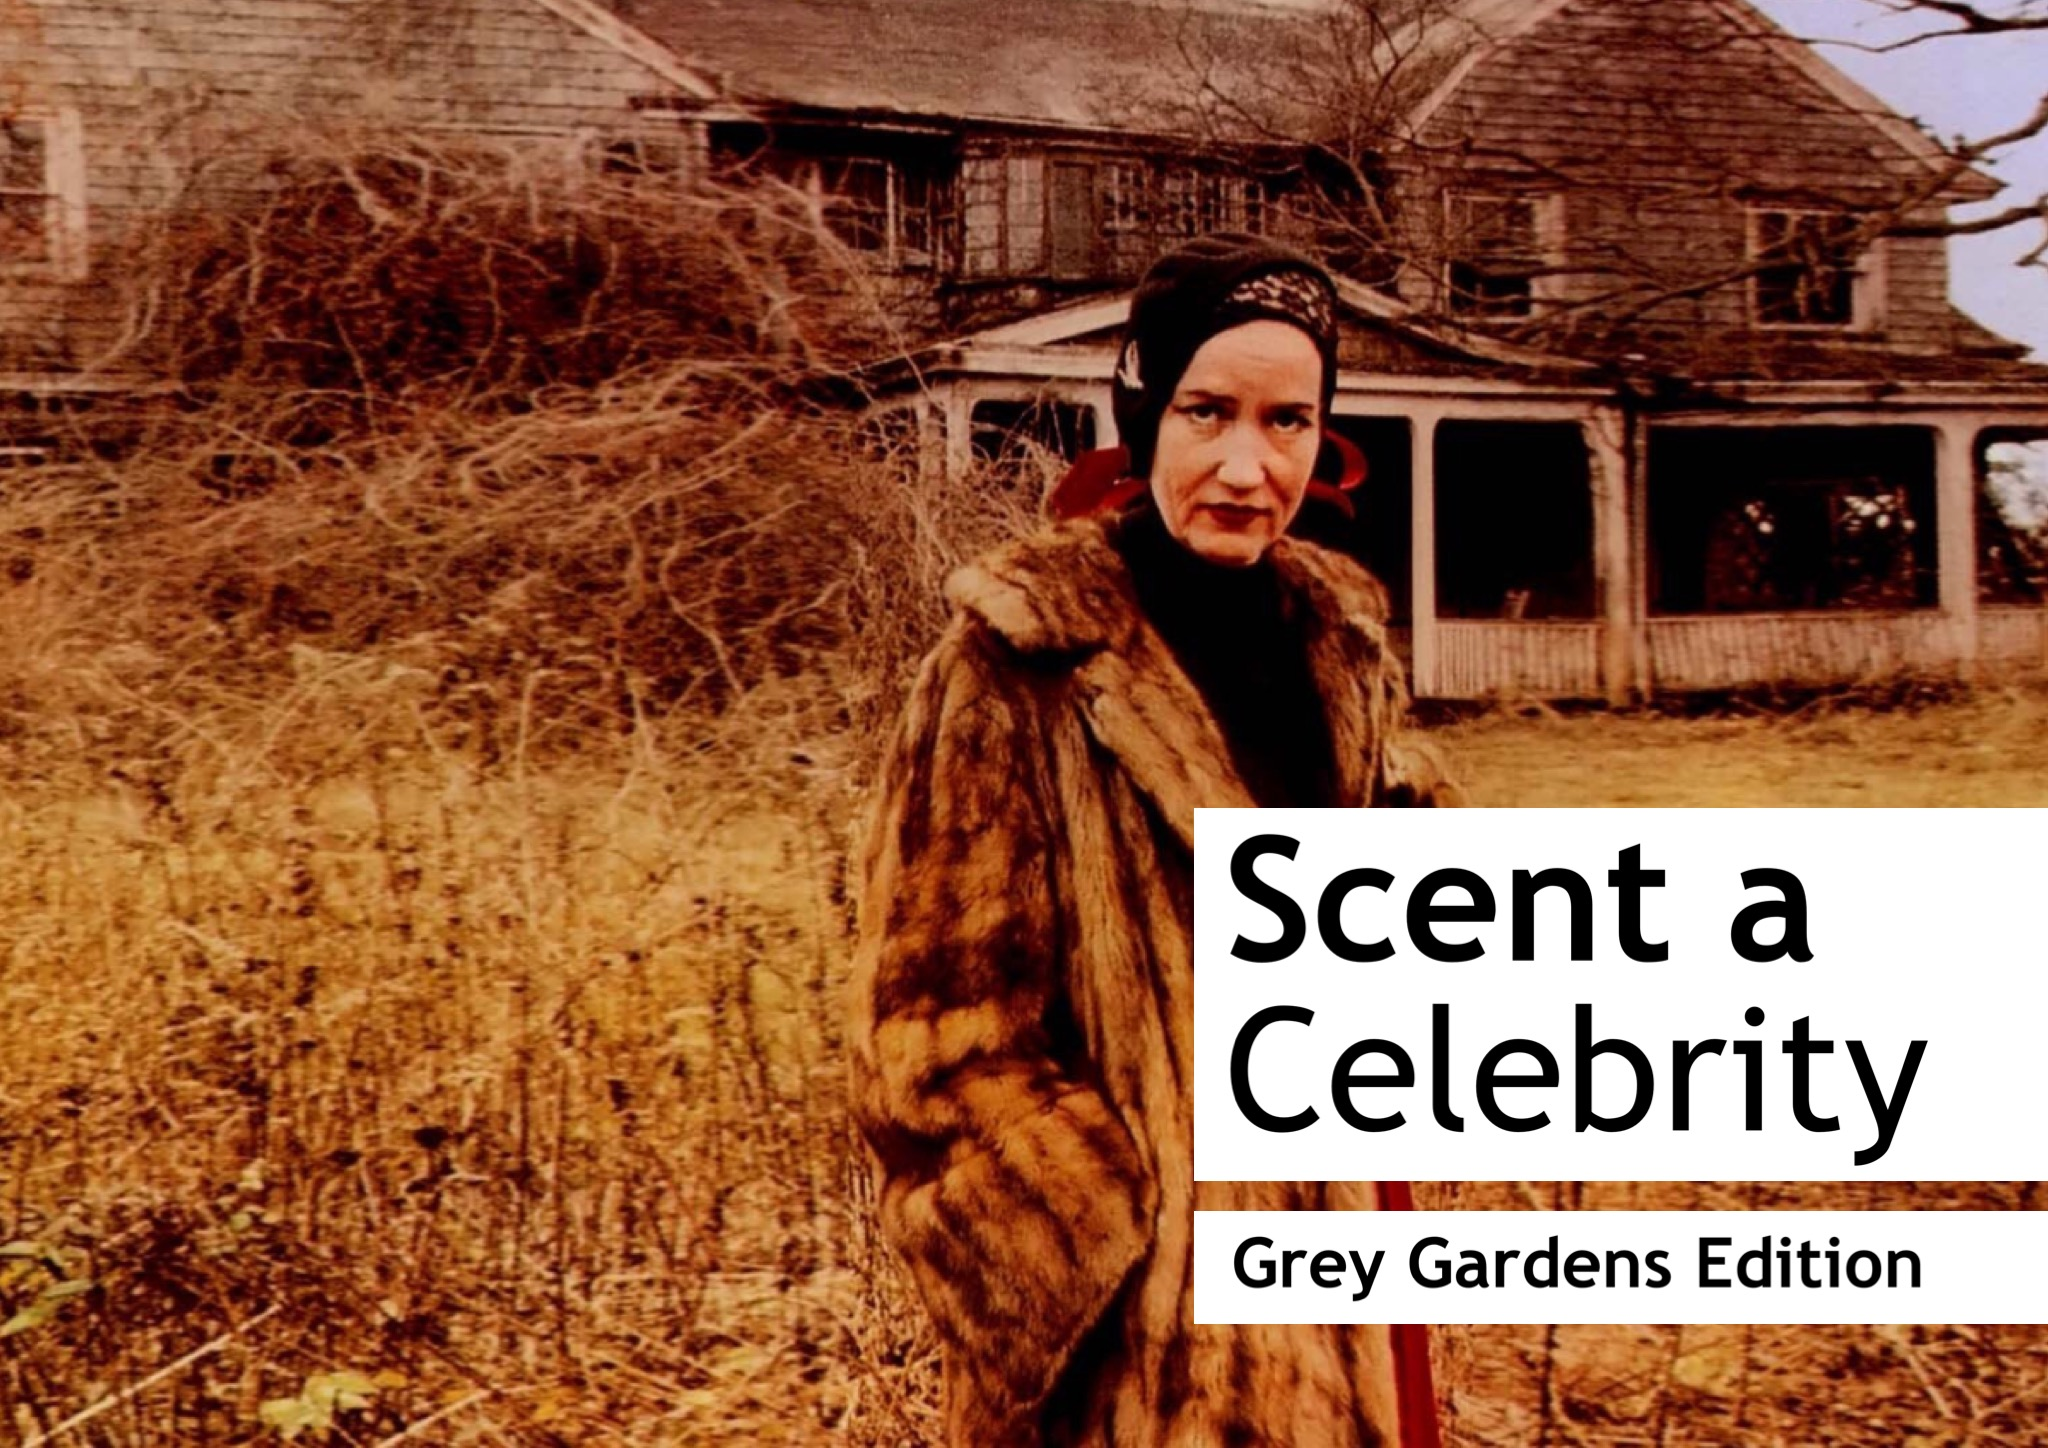 Scenting the Beales of Grey Gardens